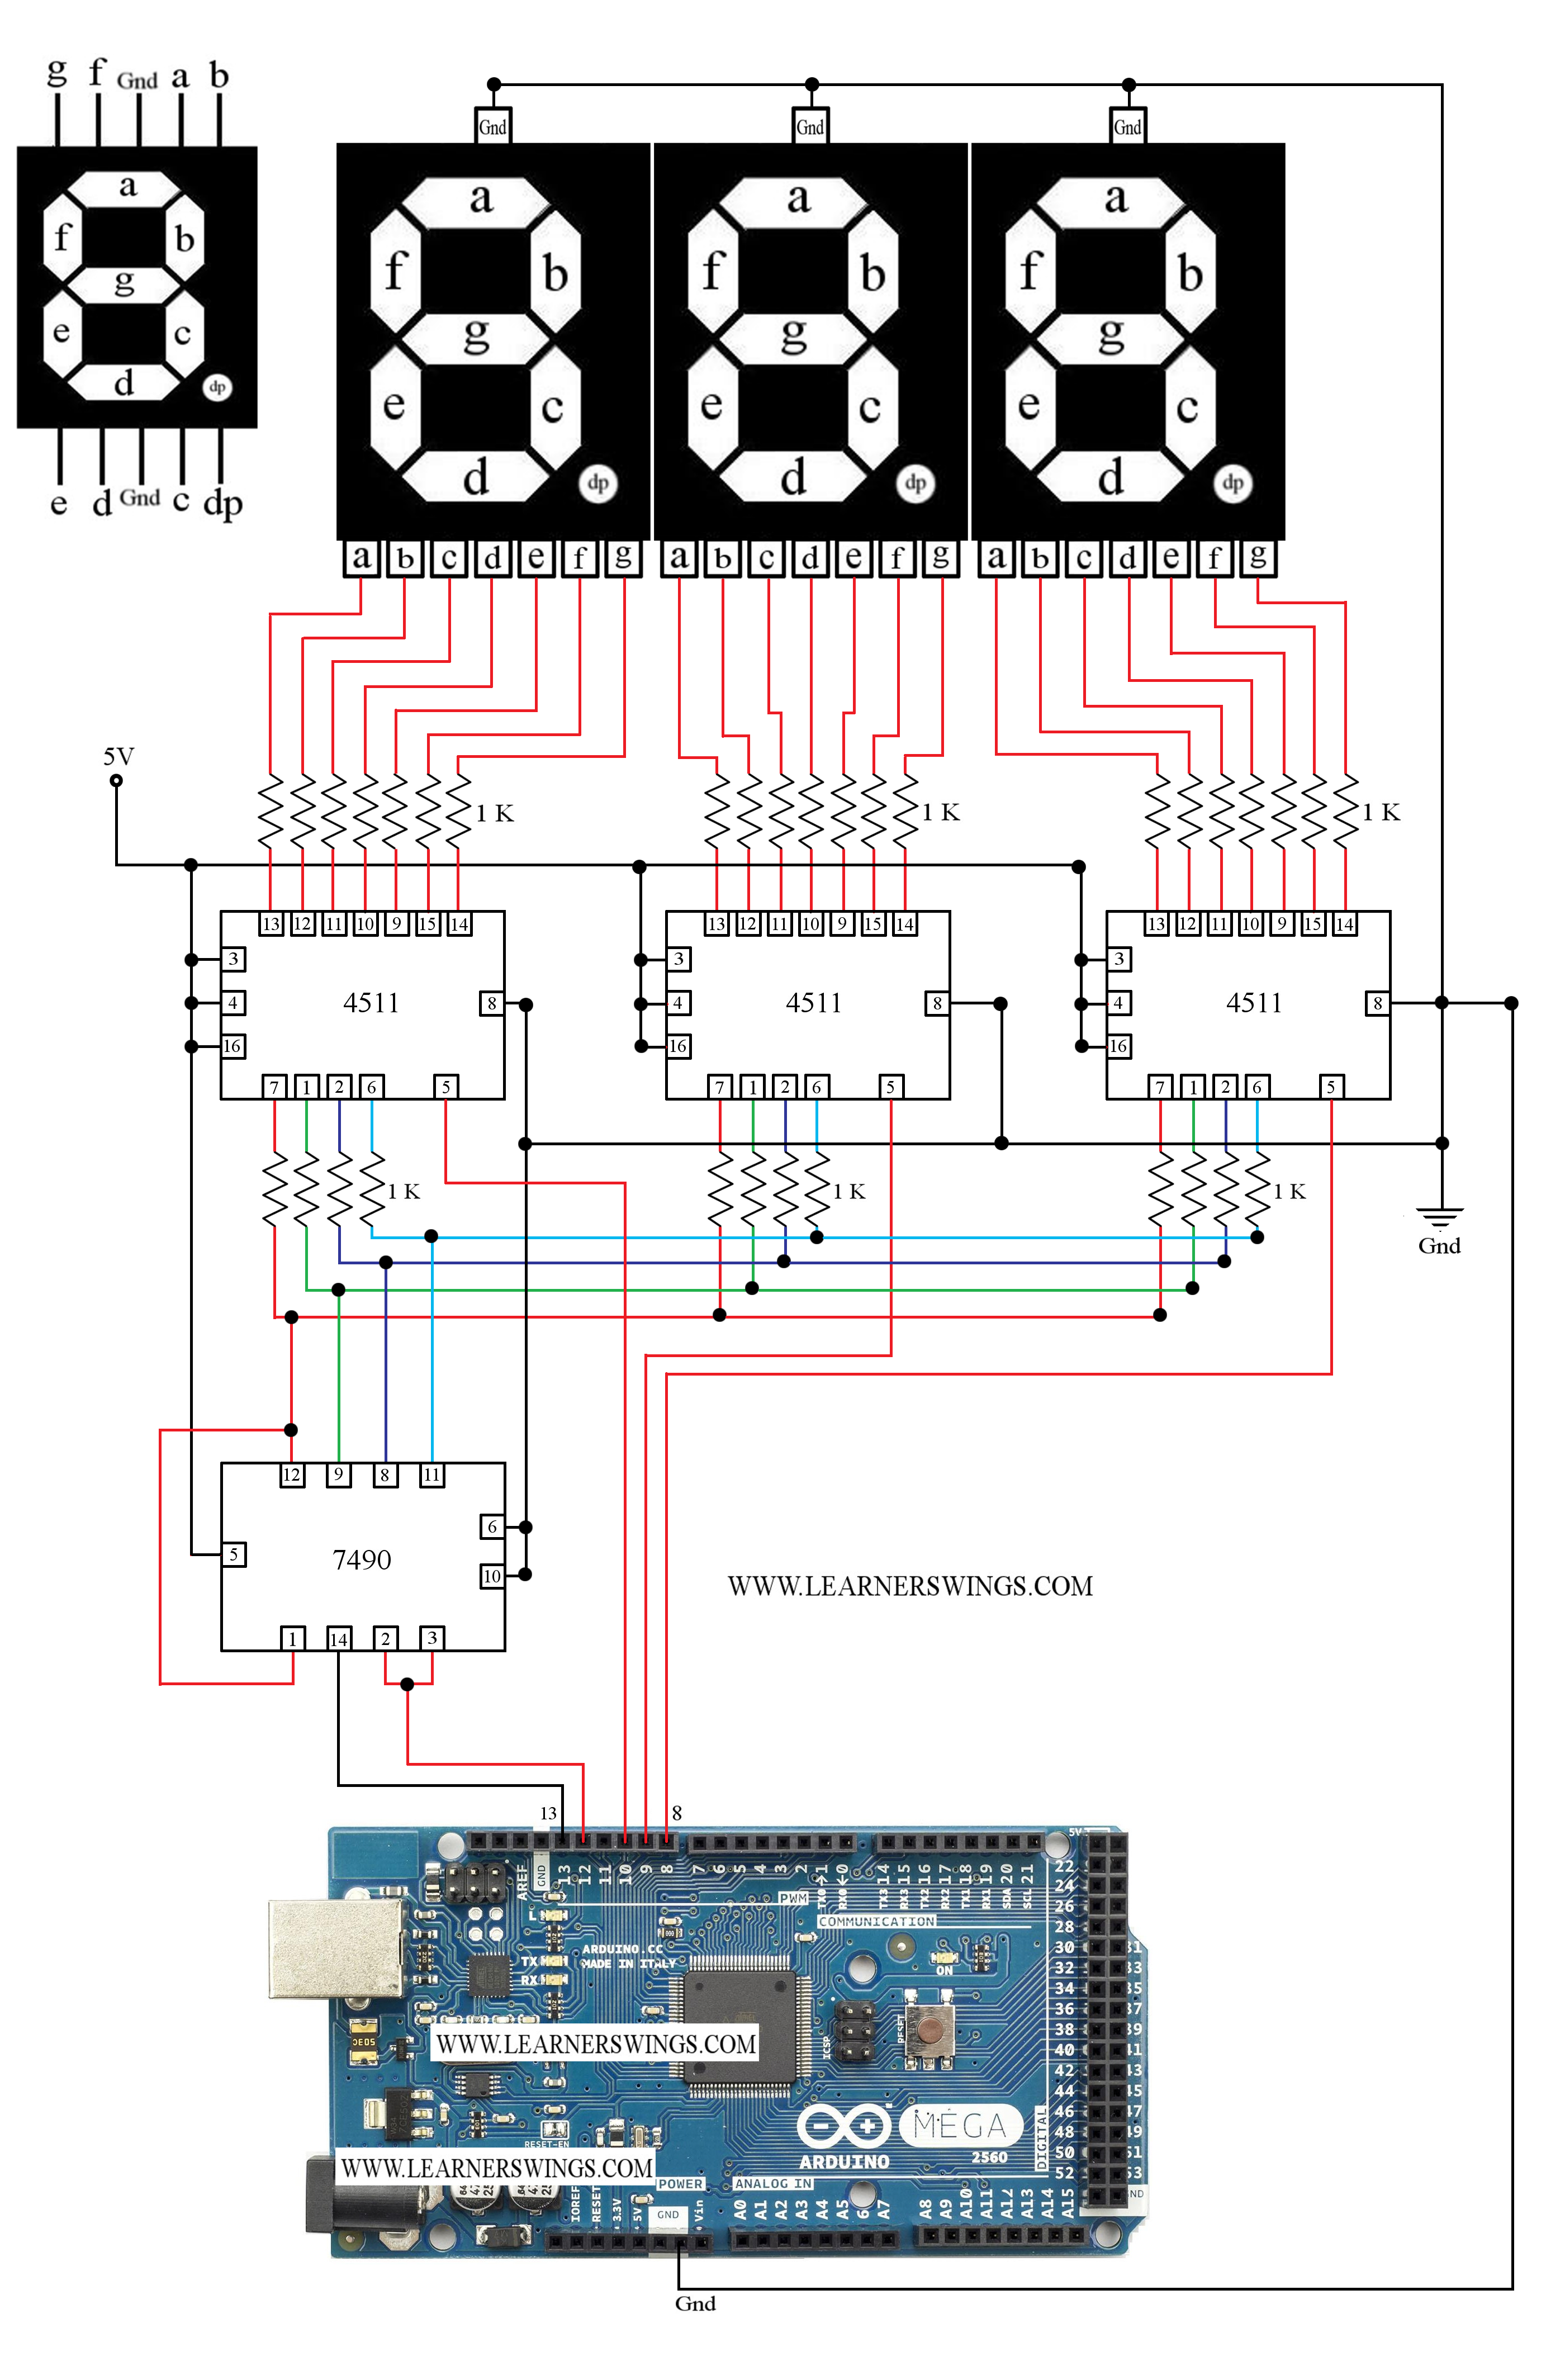 Logic Diagram 7490 Wiring Library Circuit To Control Seven Segment Display Using And 4511